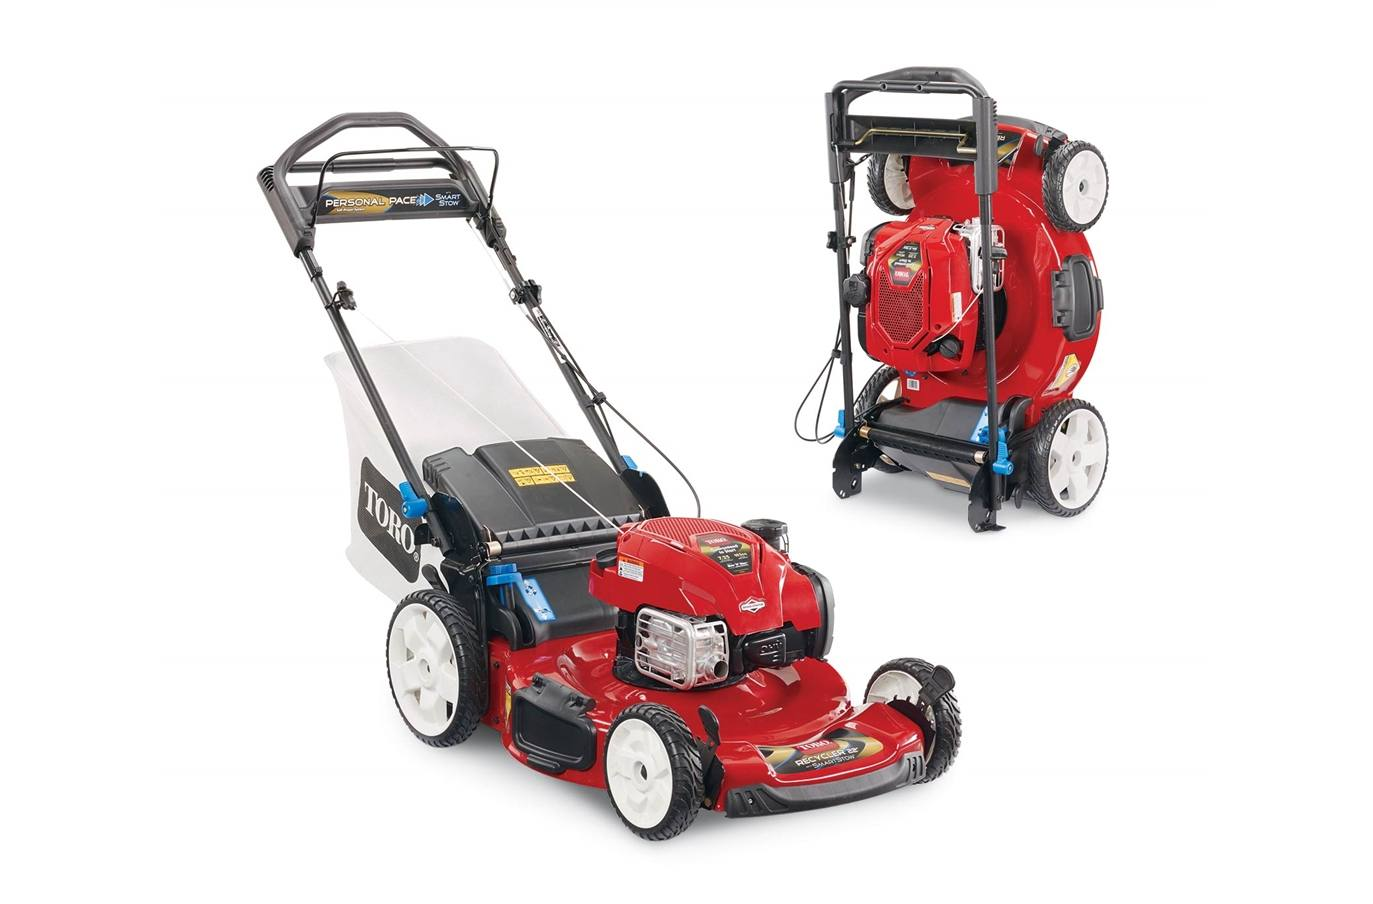 New Inventory from Toro Art's Lawn Mower Shop Florissant, MO